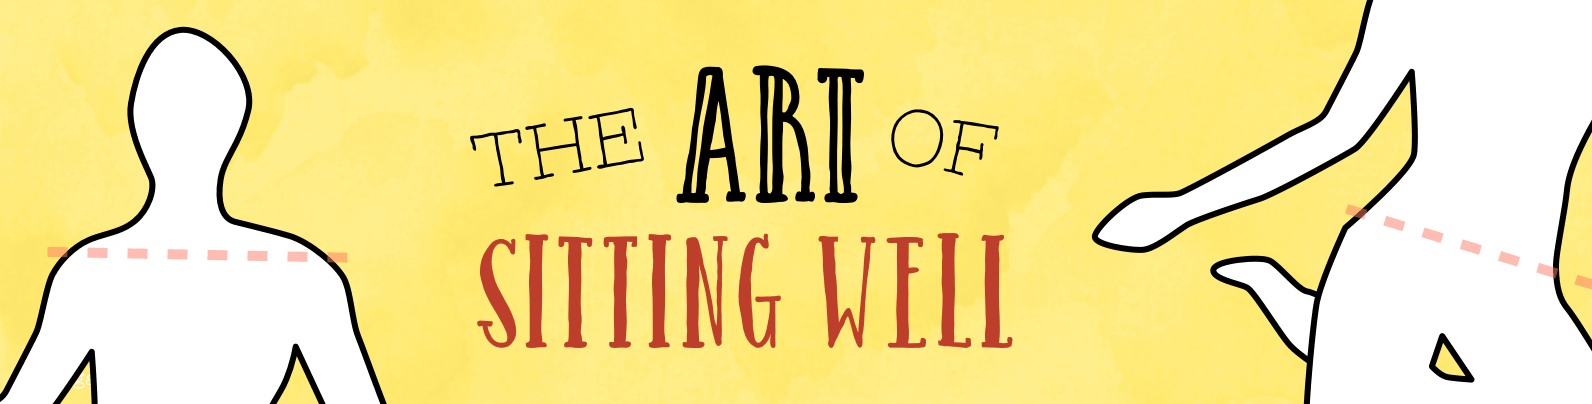 The Art of Sitting Well